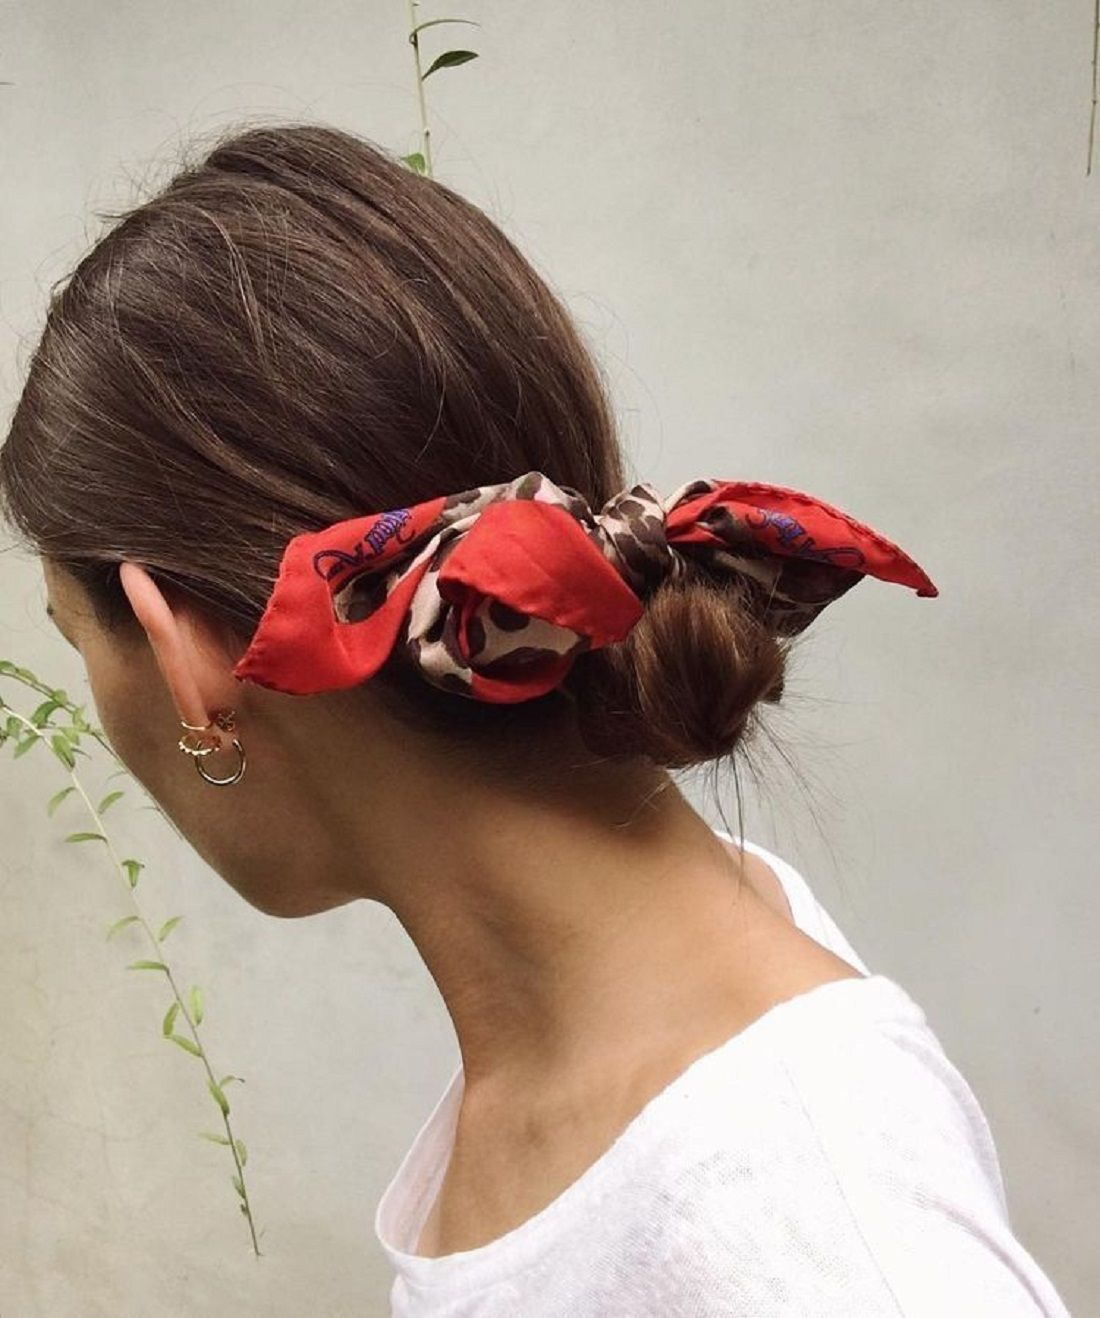 how-to-style-hair-accessories-scarf-scarves-bandana-silk-chignon-printed-bow.jpg